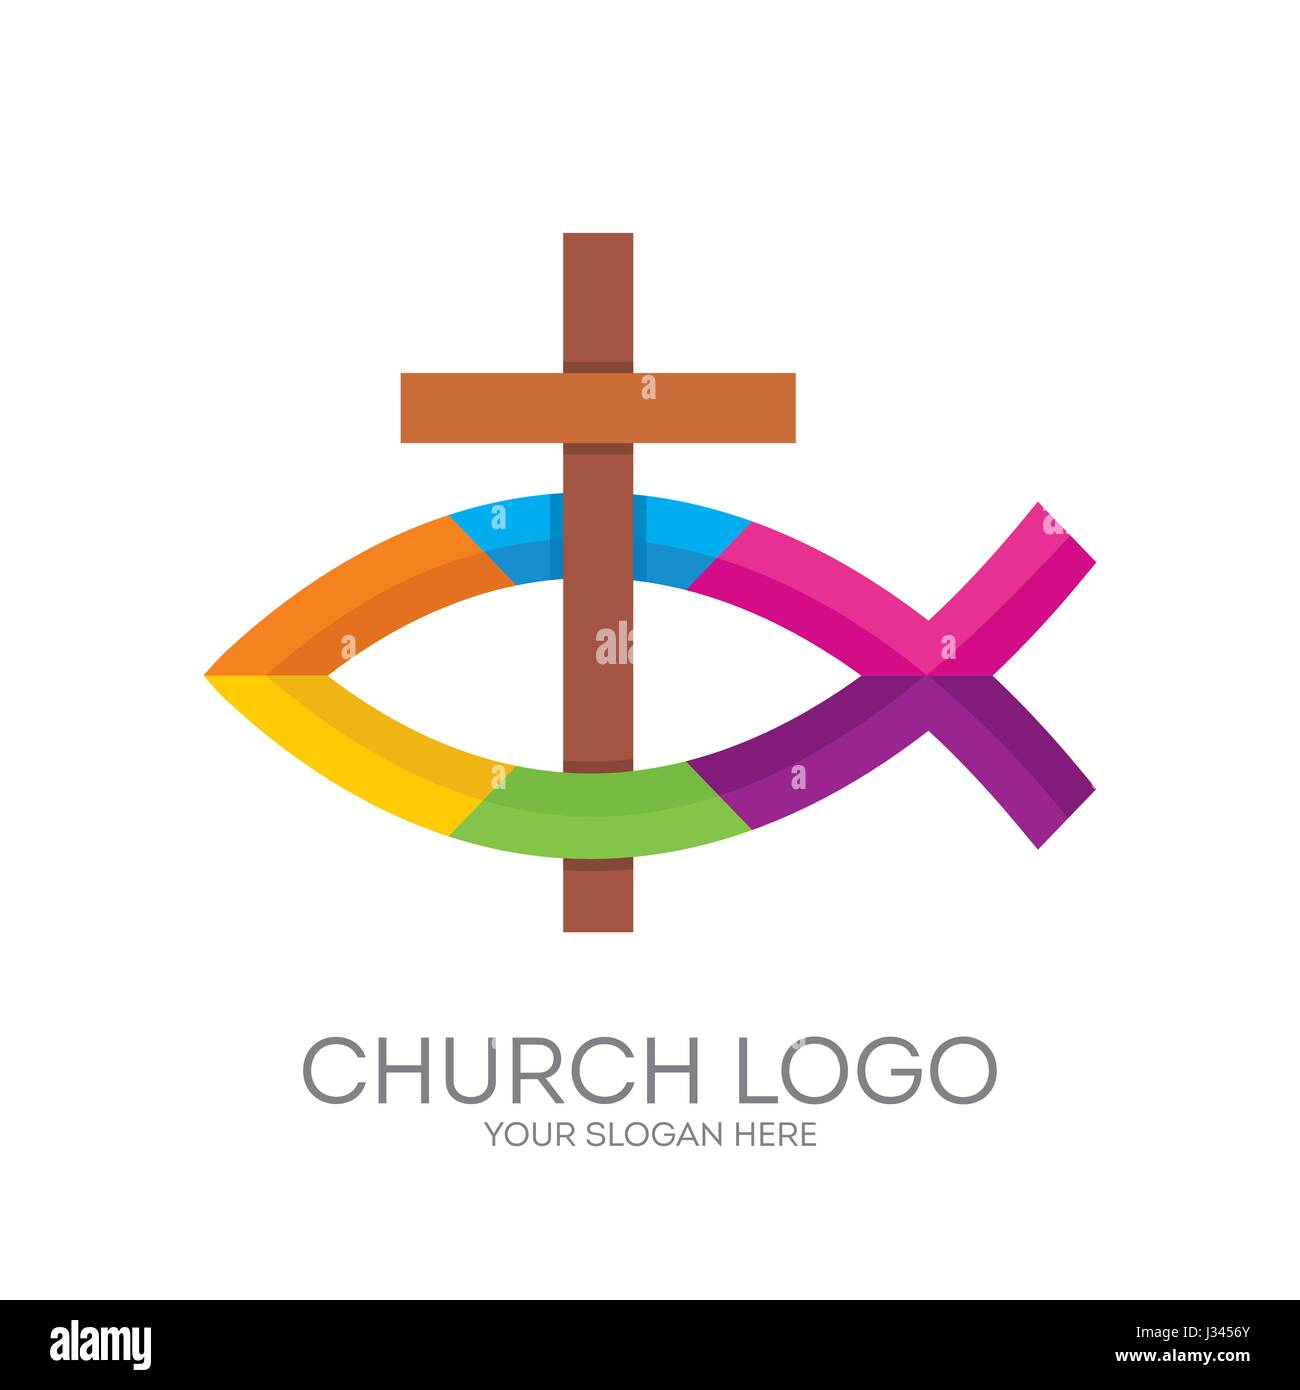 Church Logo Christian Symbols The Cross Of Jesus And The Christian